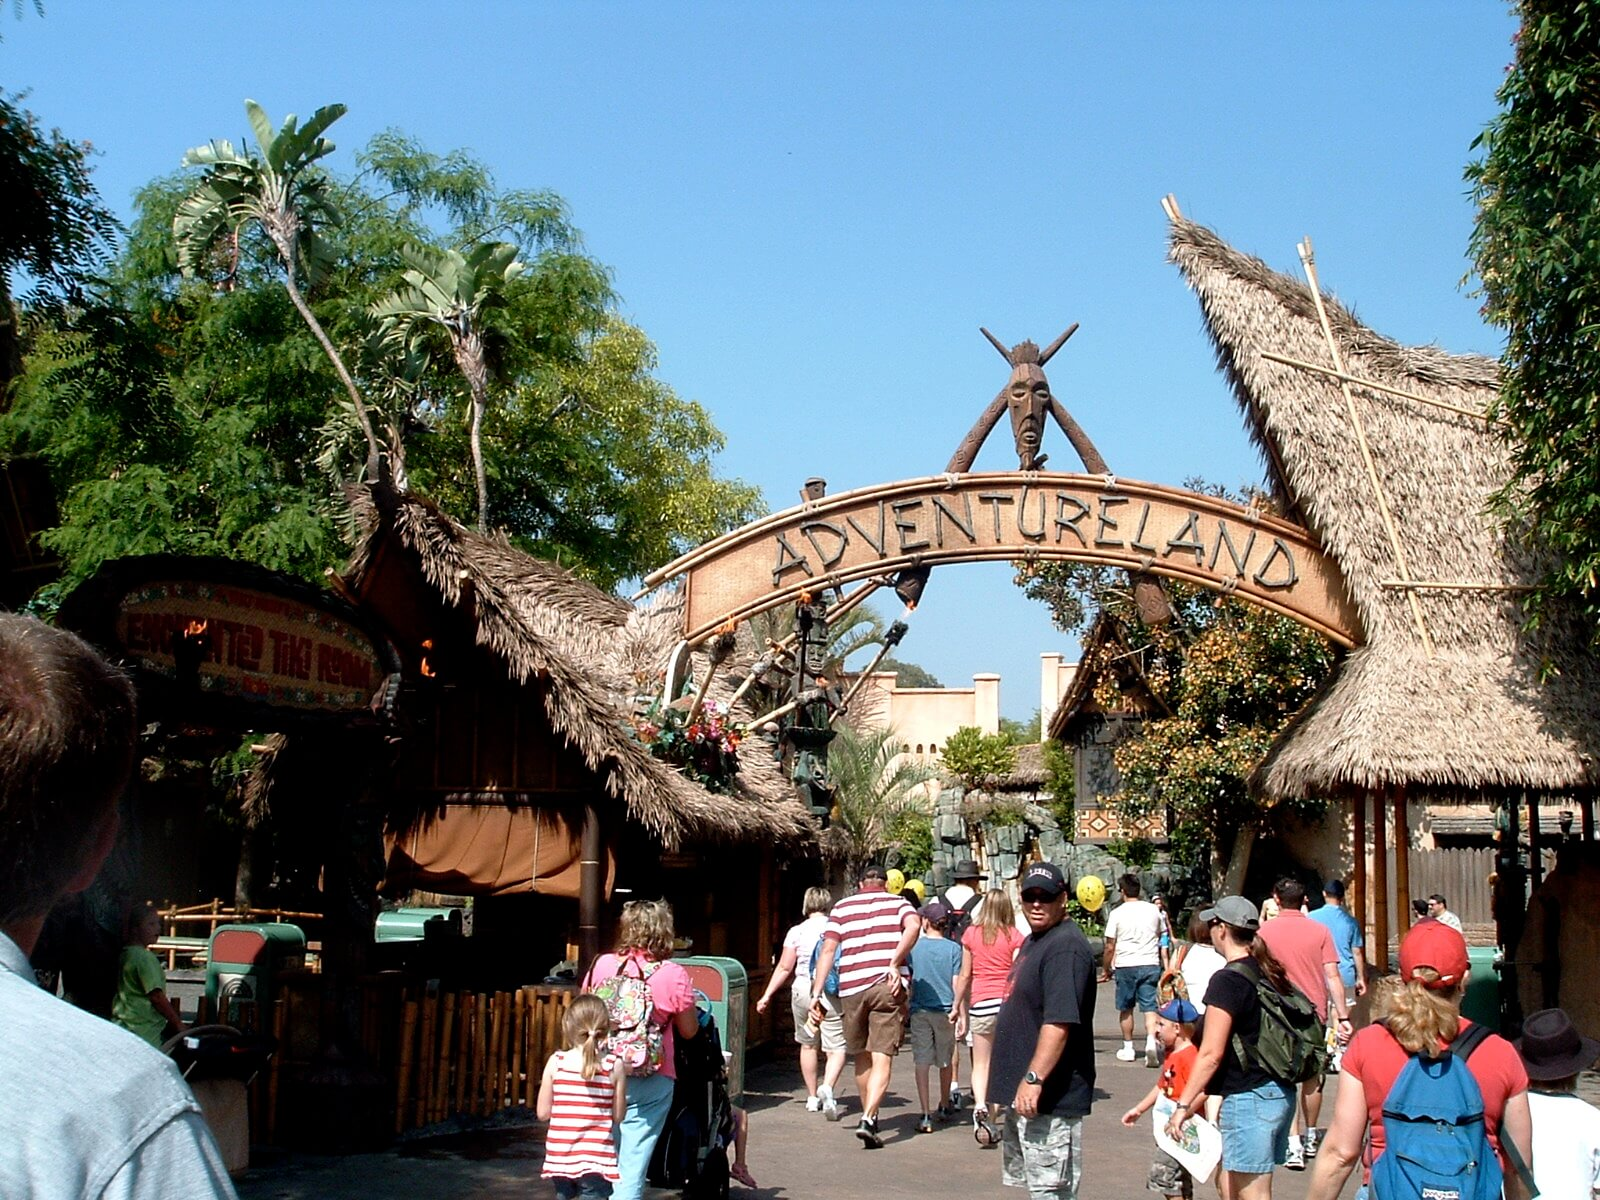 Adventureland Entrance Things to do in disneyland